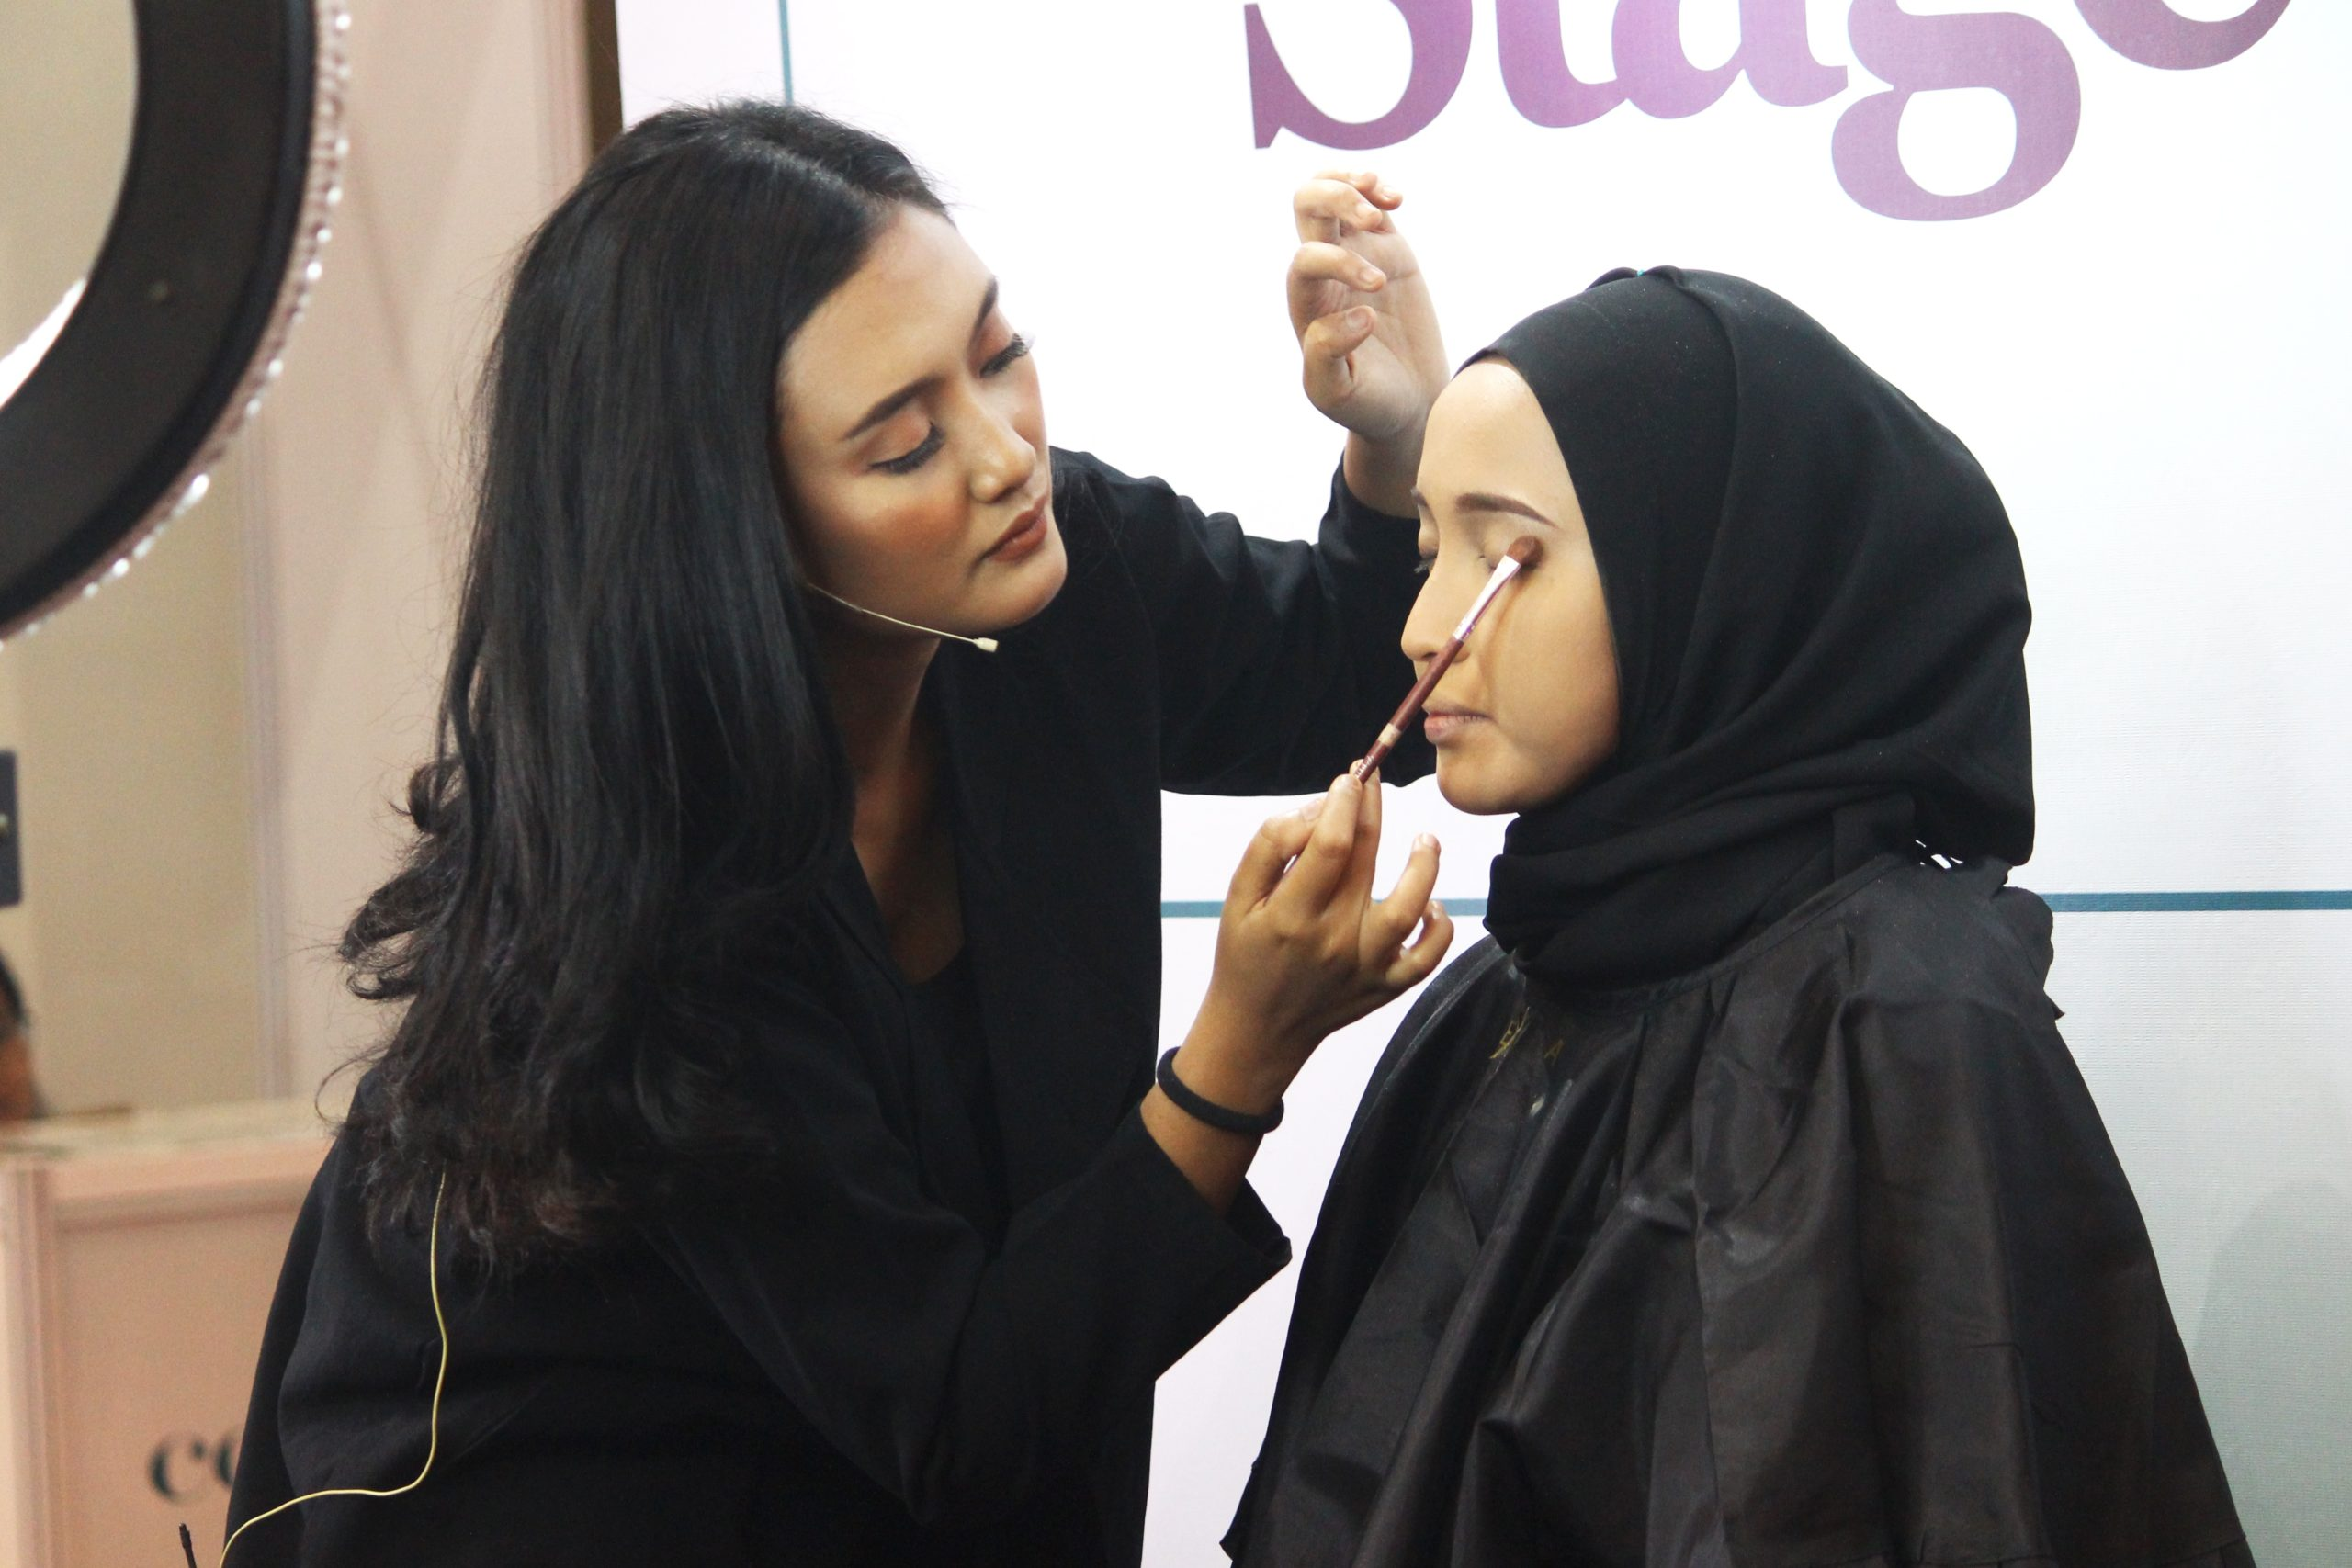 woman applying makeup to another woman